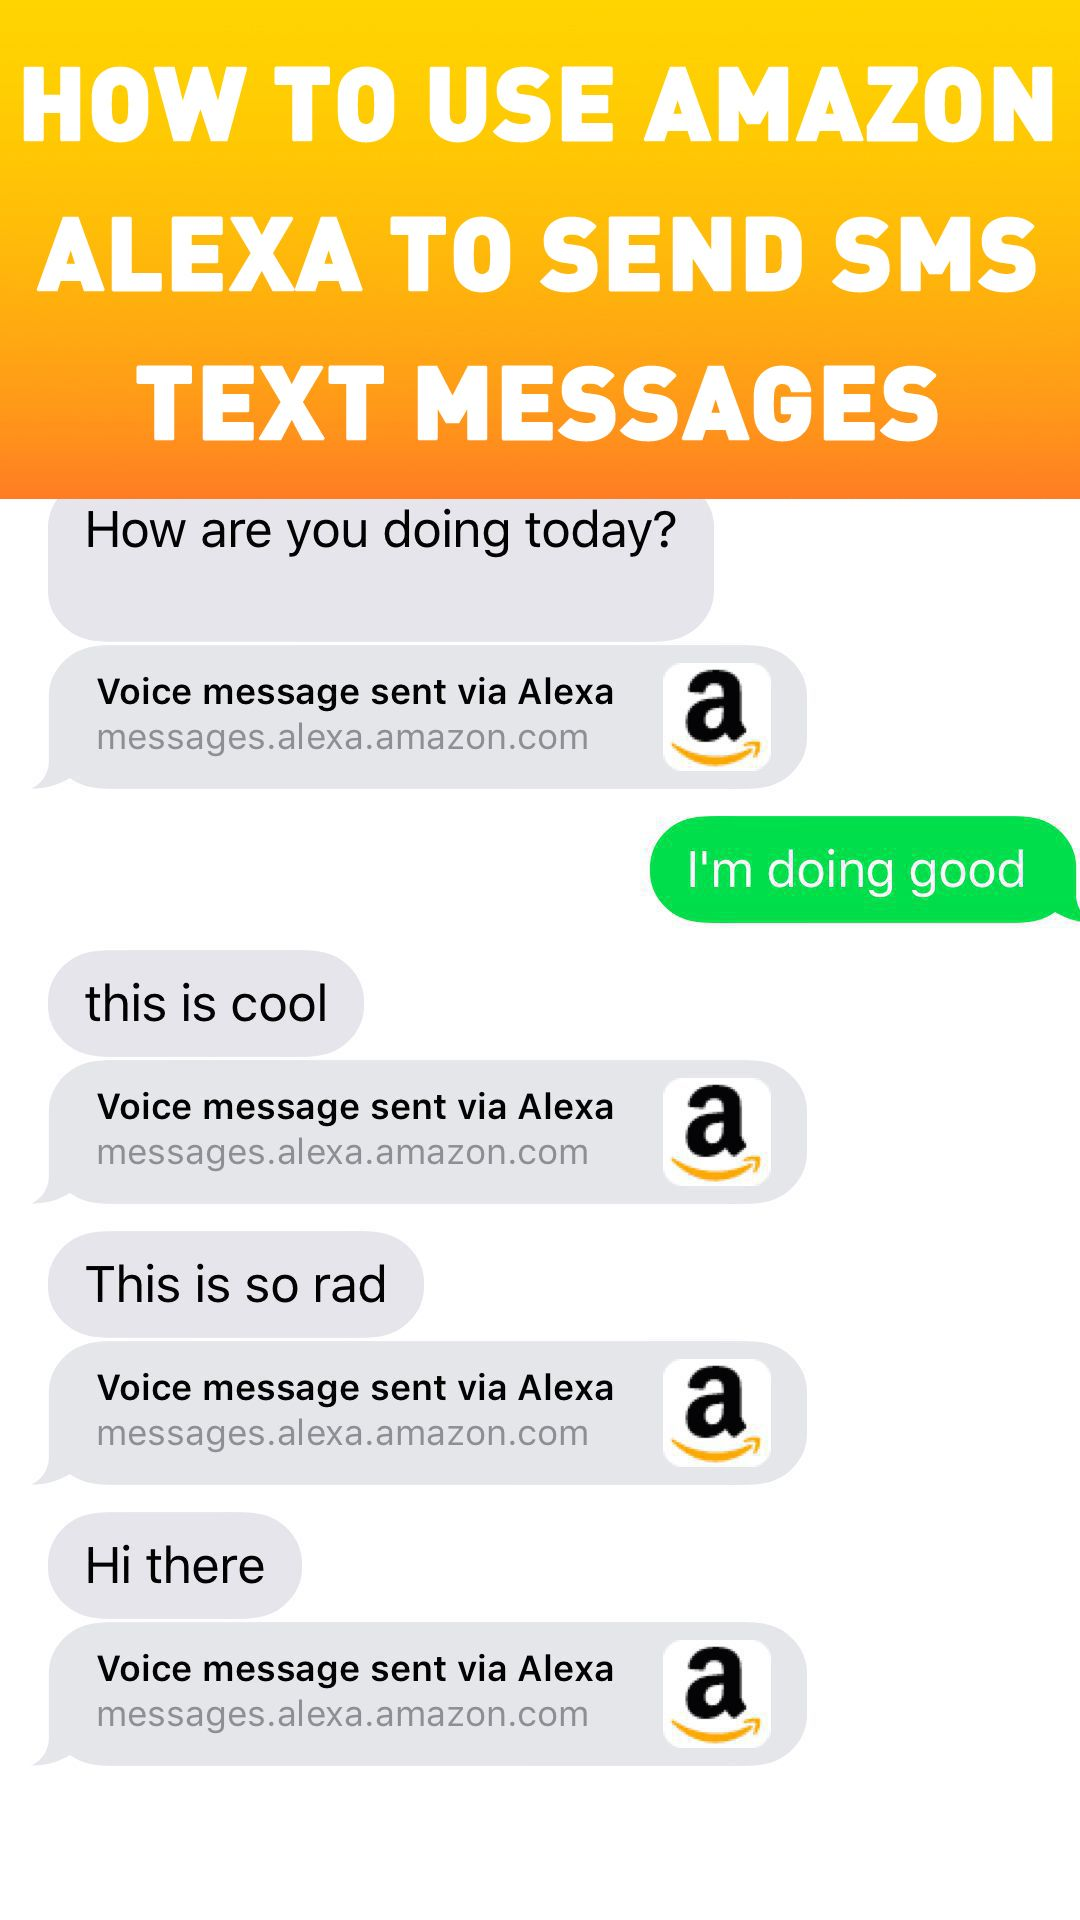 How to use Amazon Alexa to send SMS text messages Text